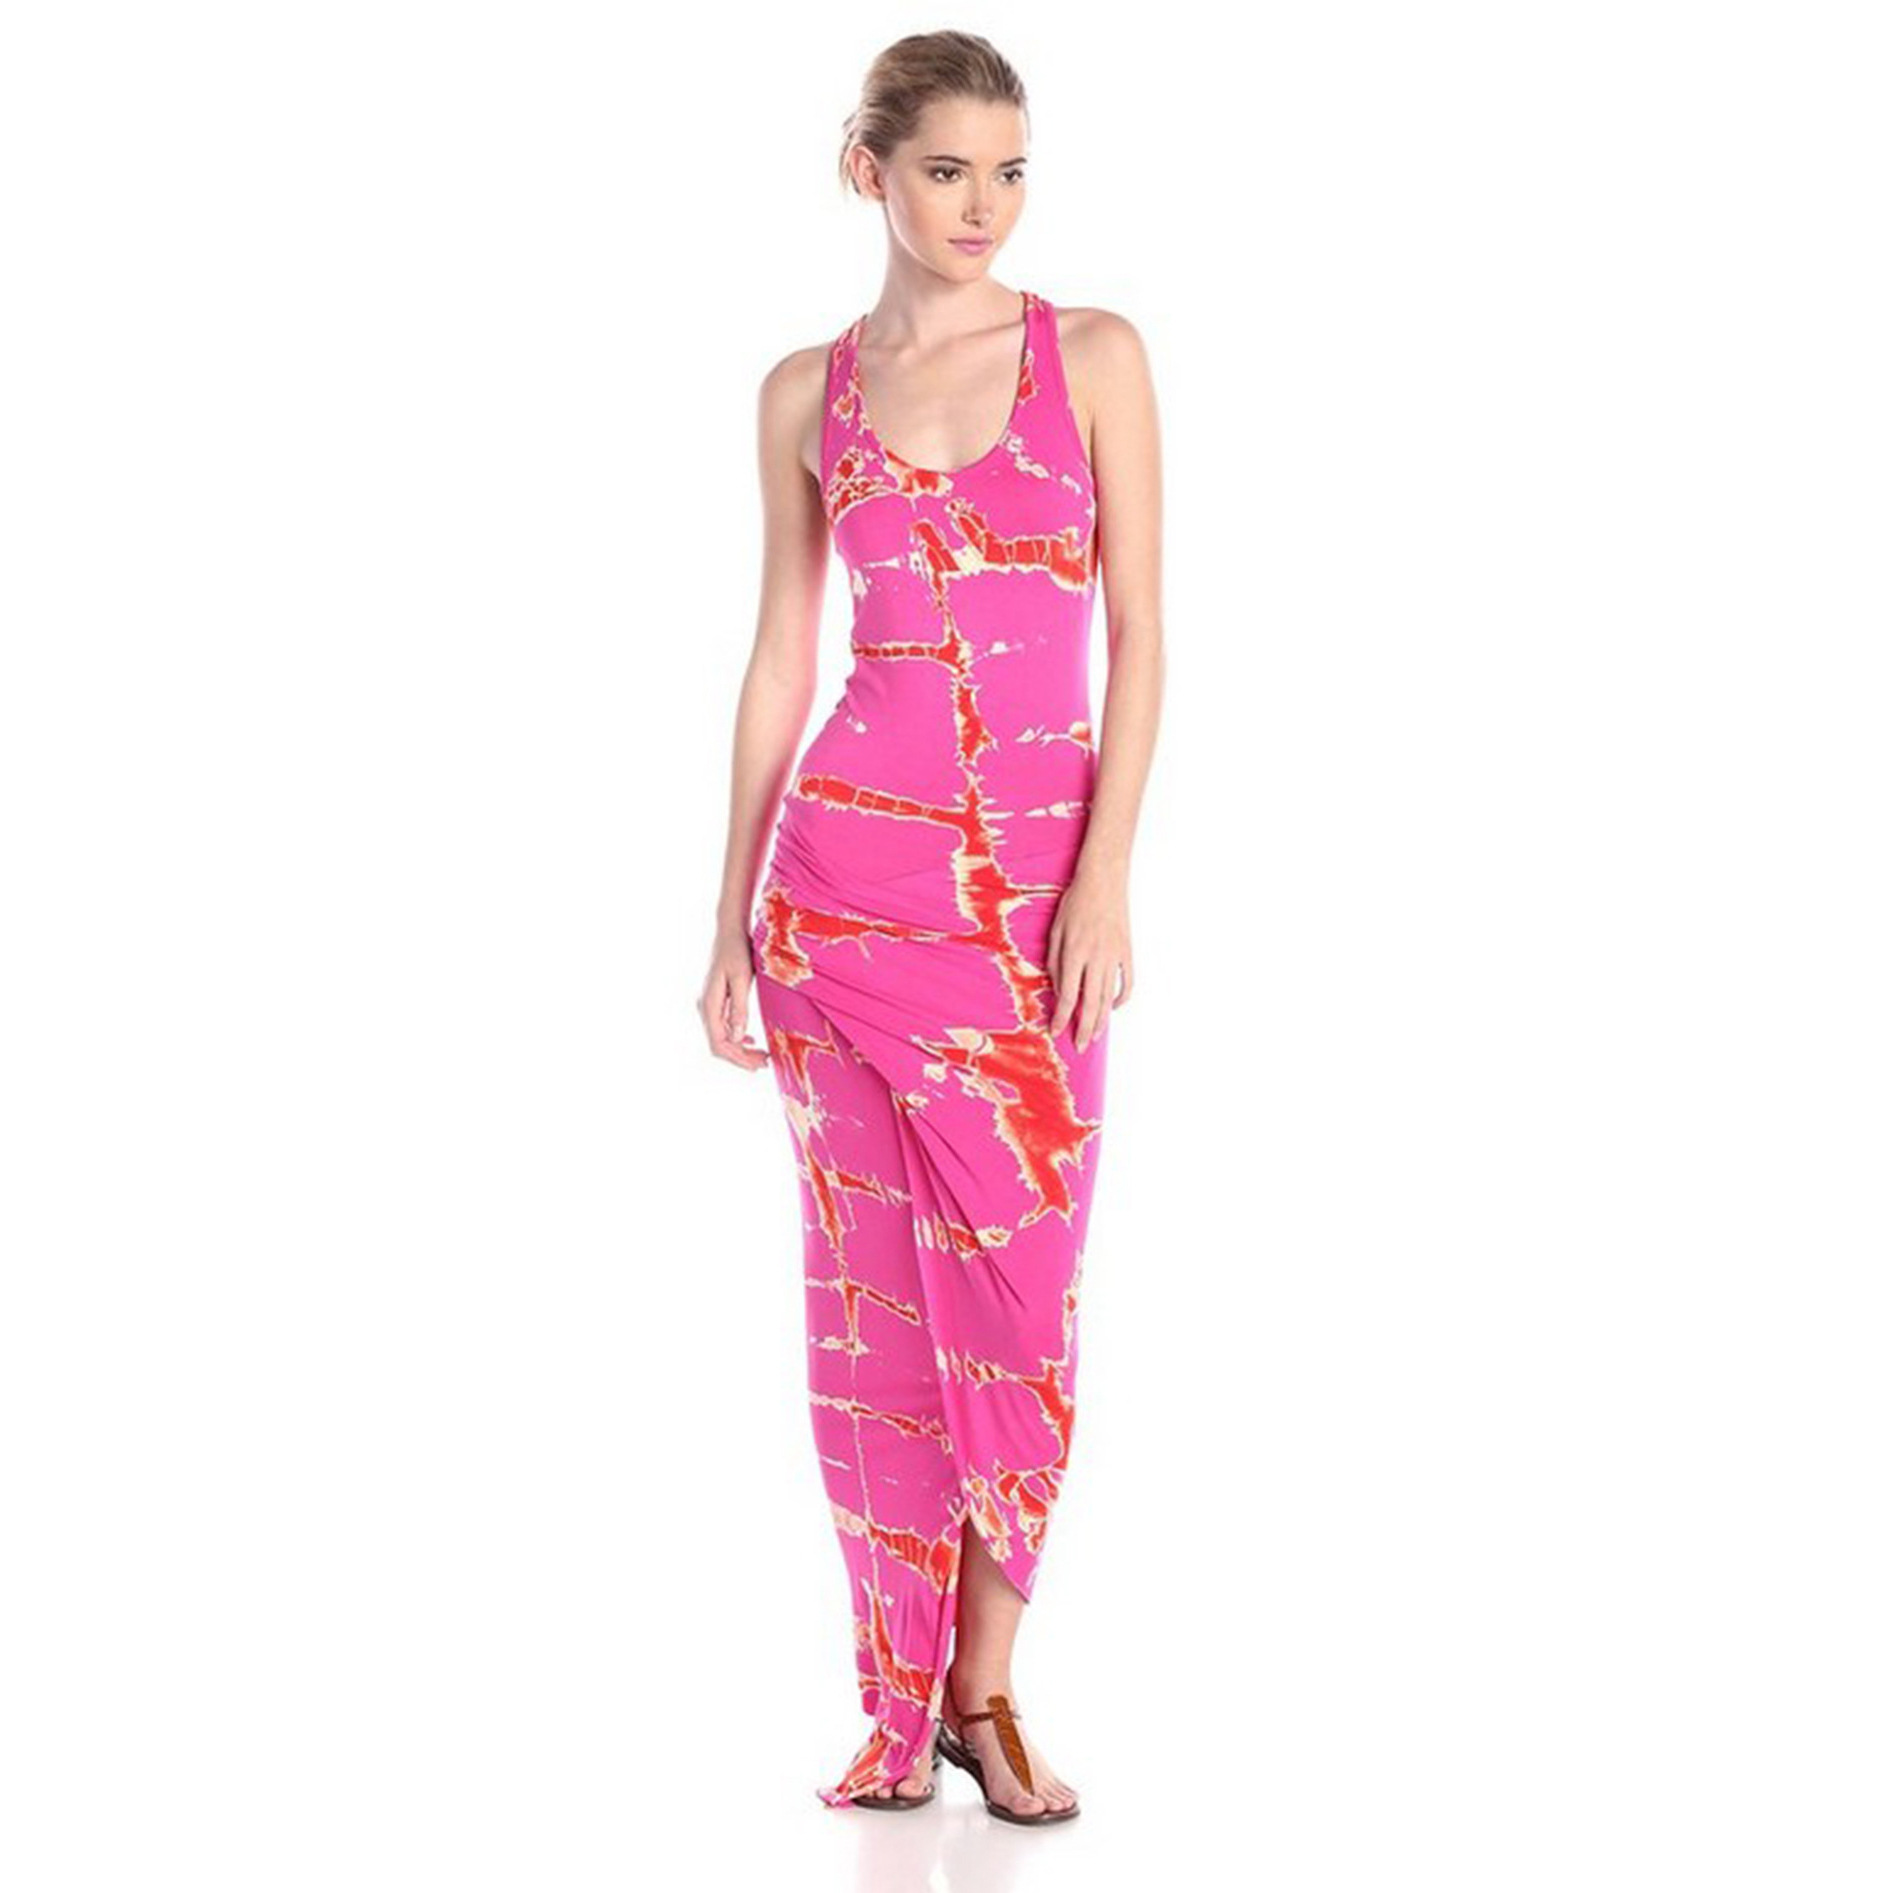 Sexy Maxi Dress <font><b>2019</b></font> Robe Longue Femme Beach Tunic Vestido Dresses Hot <font><b>Mujer</b></font> <font><b>Verano</b></font> <font><b>Largo</b></font> Women Clothing <font><b>Vestidos</b></font> image